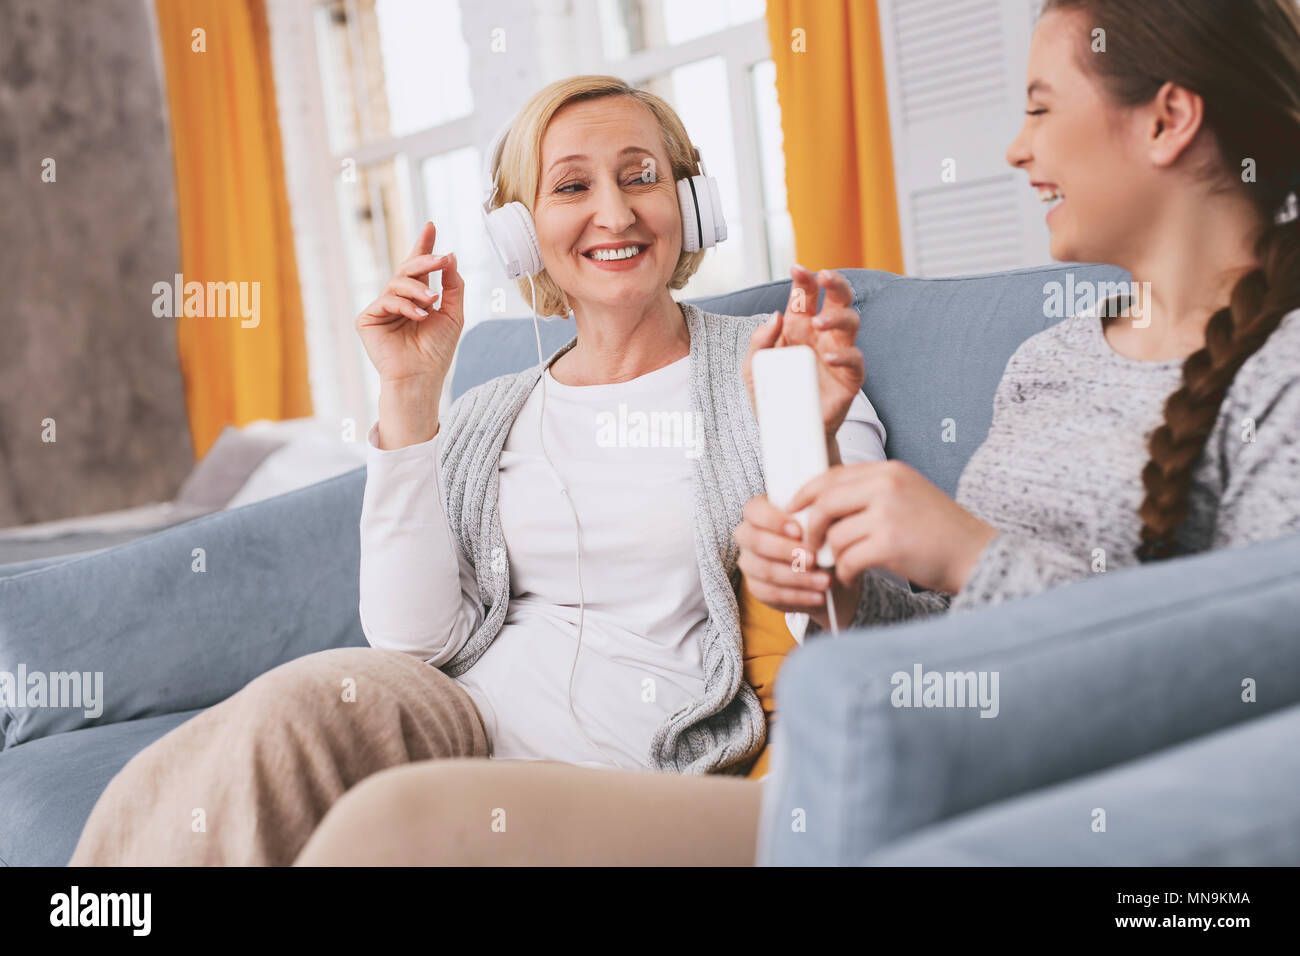 Pleased female person enjoying her weekends - Stock Image